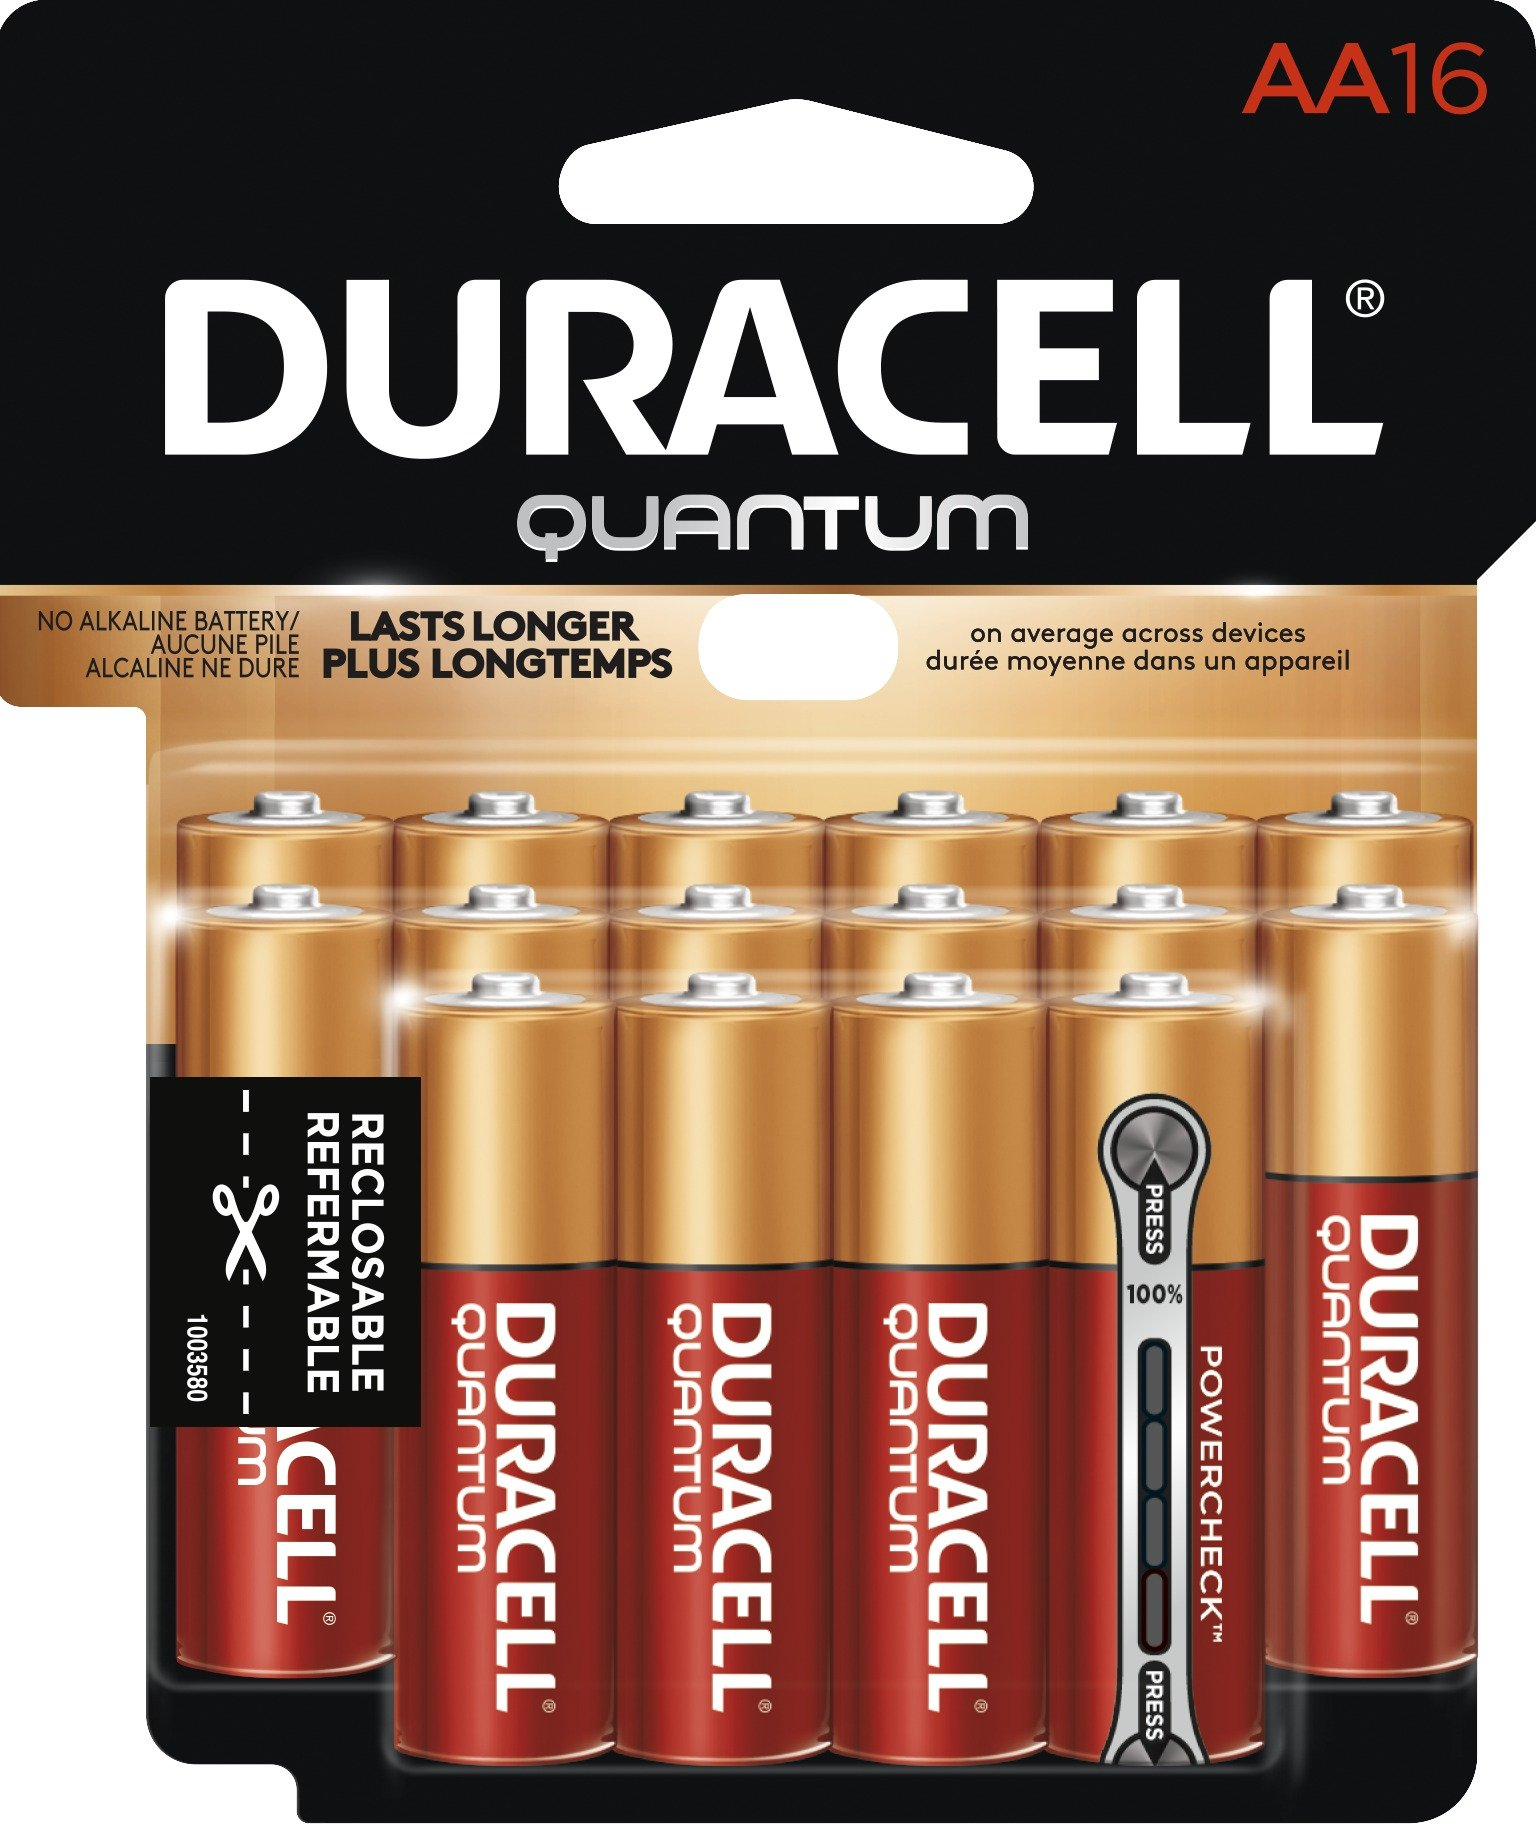 Duracell - Quantum AA Alkaline Batteries - long lasting, all-purpose Double A battery for household and business - 16 count